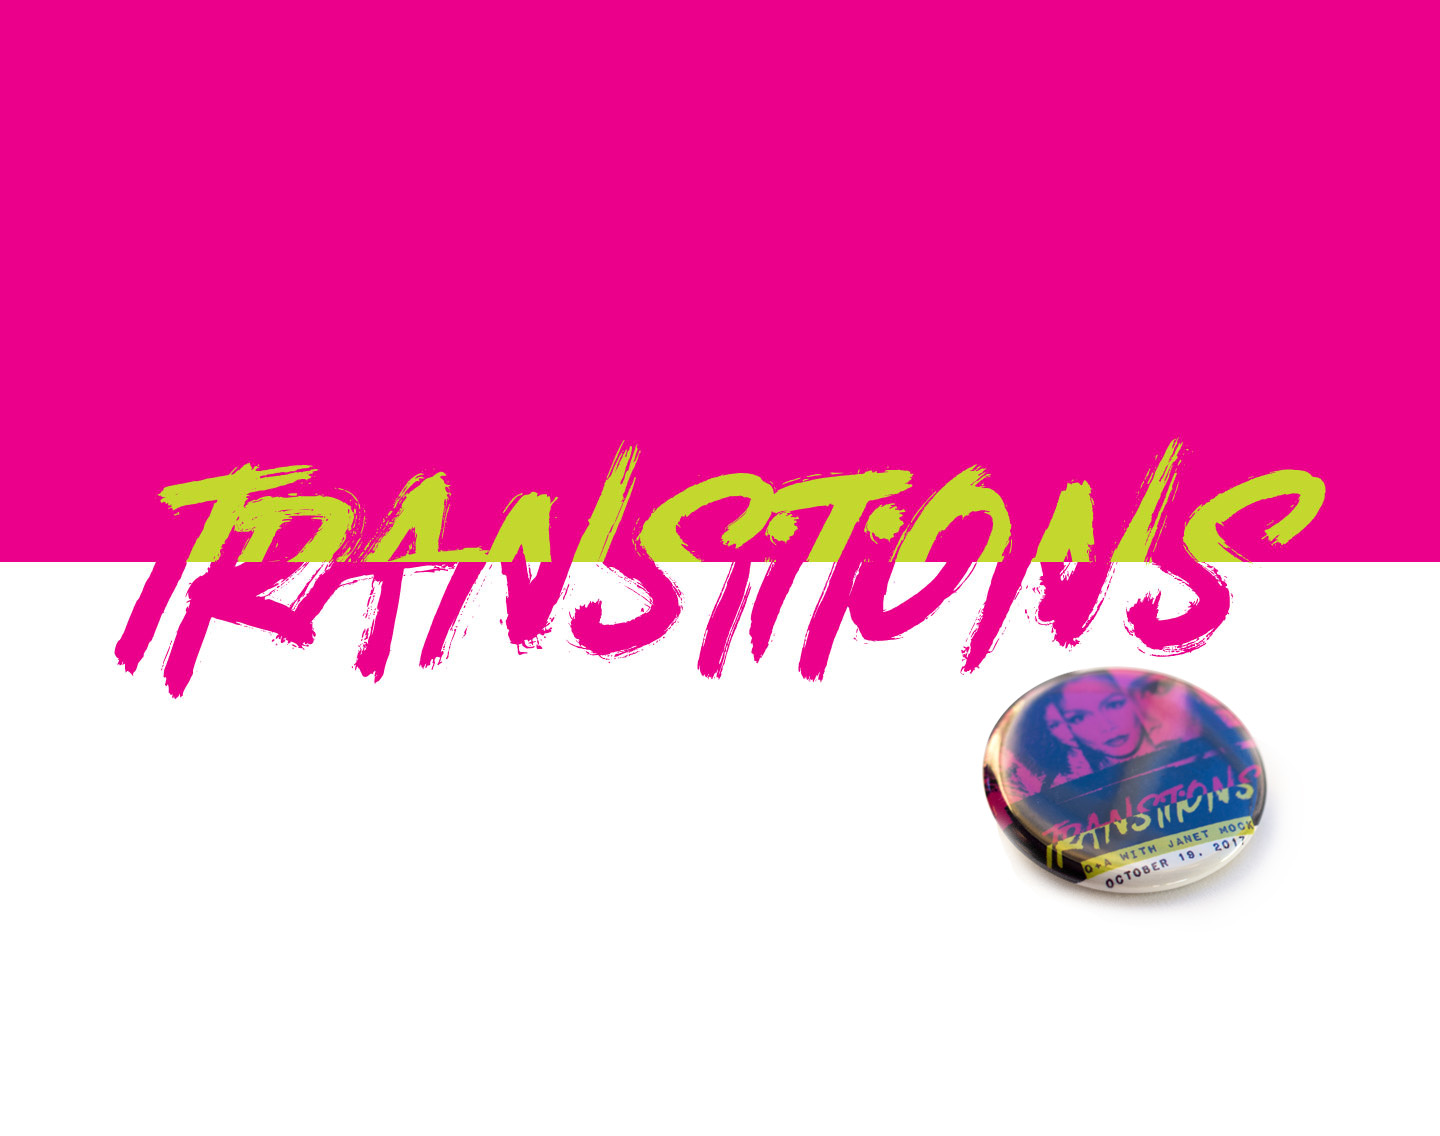 Transitions written in half pink and half lime green atop a pink and white background above a button mockup